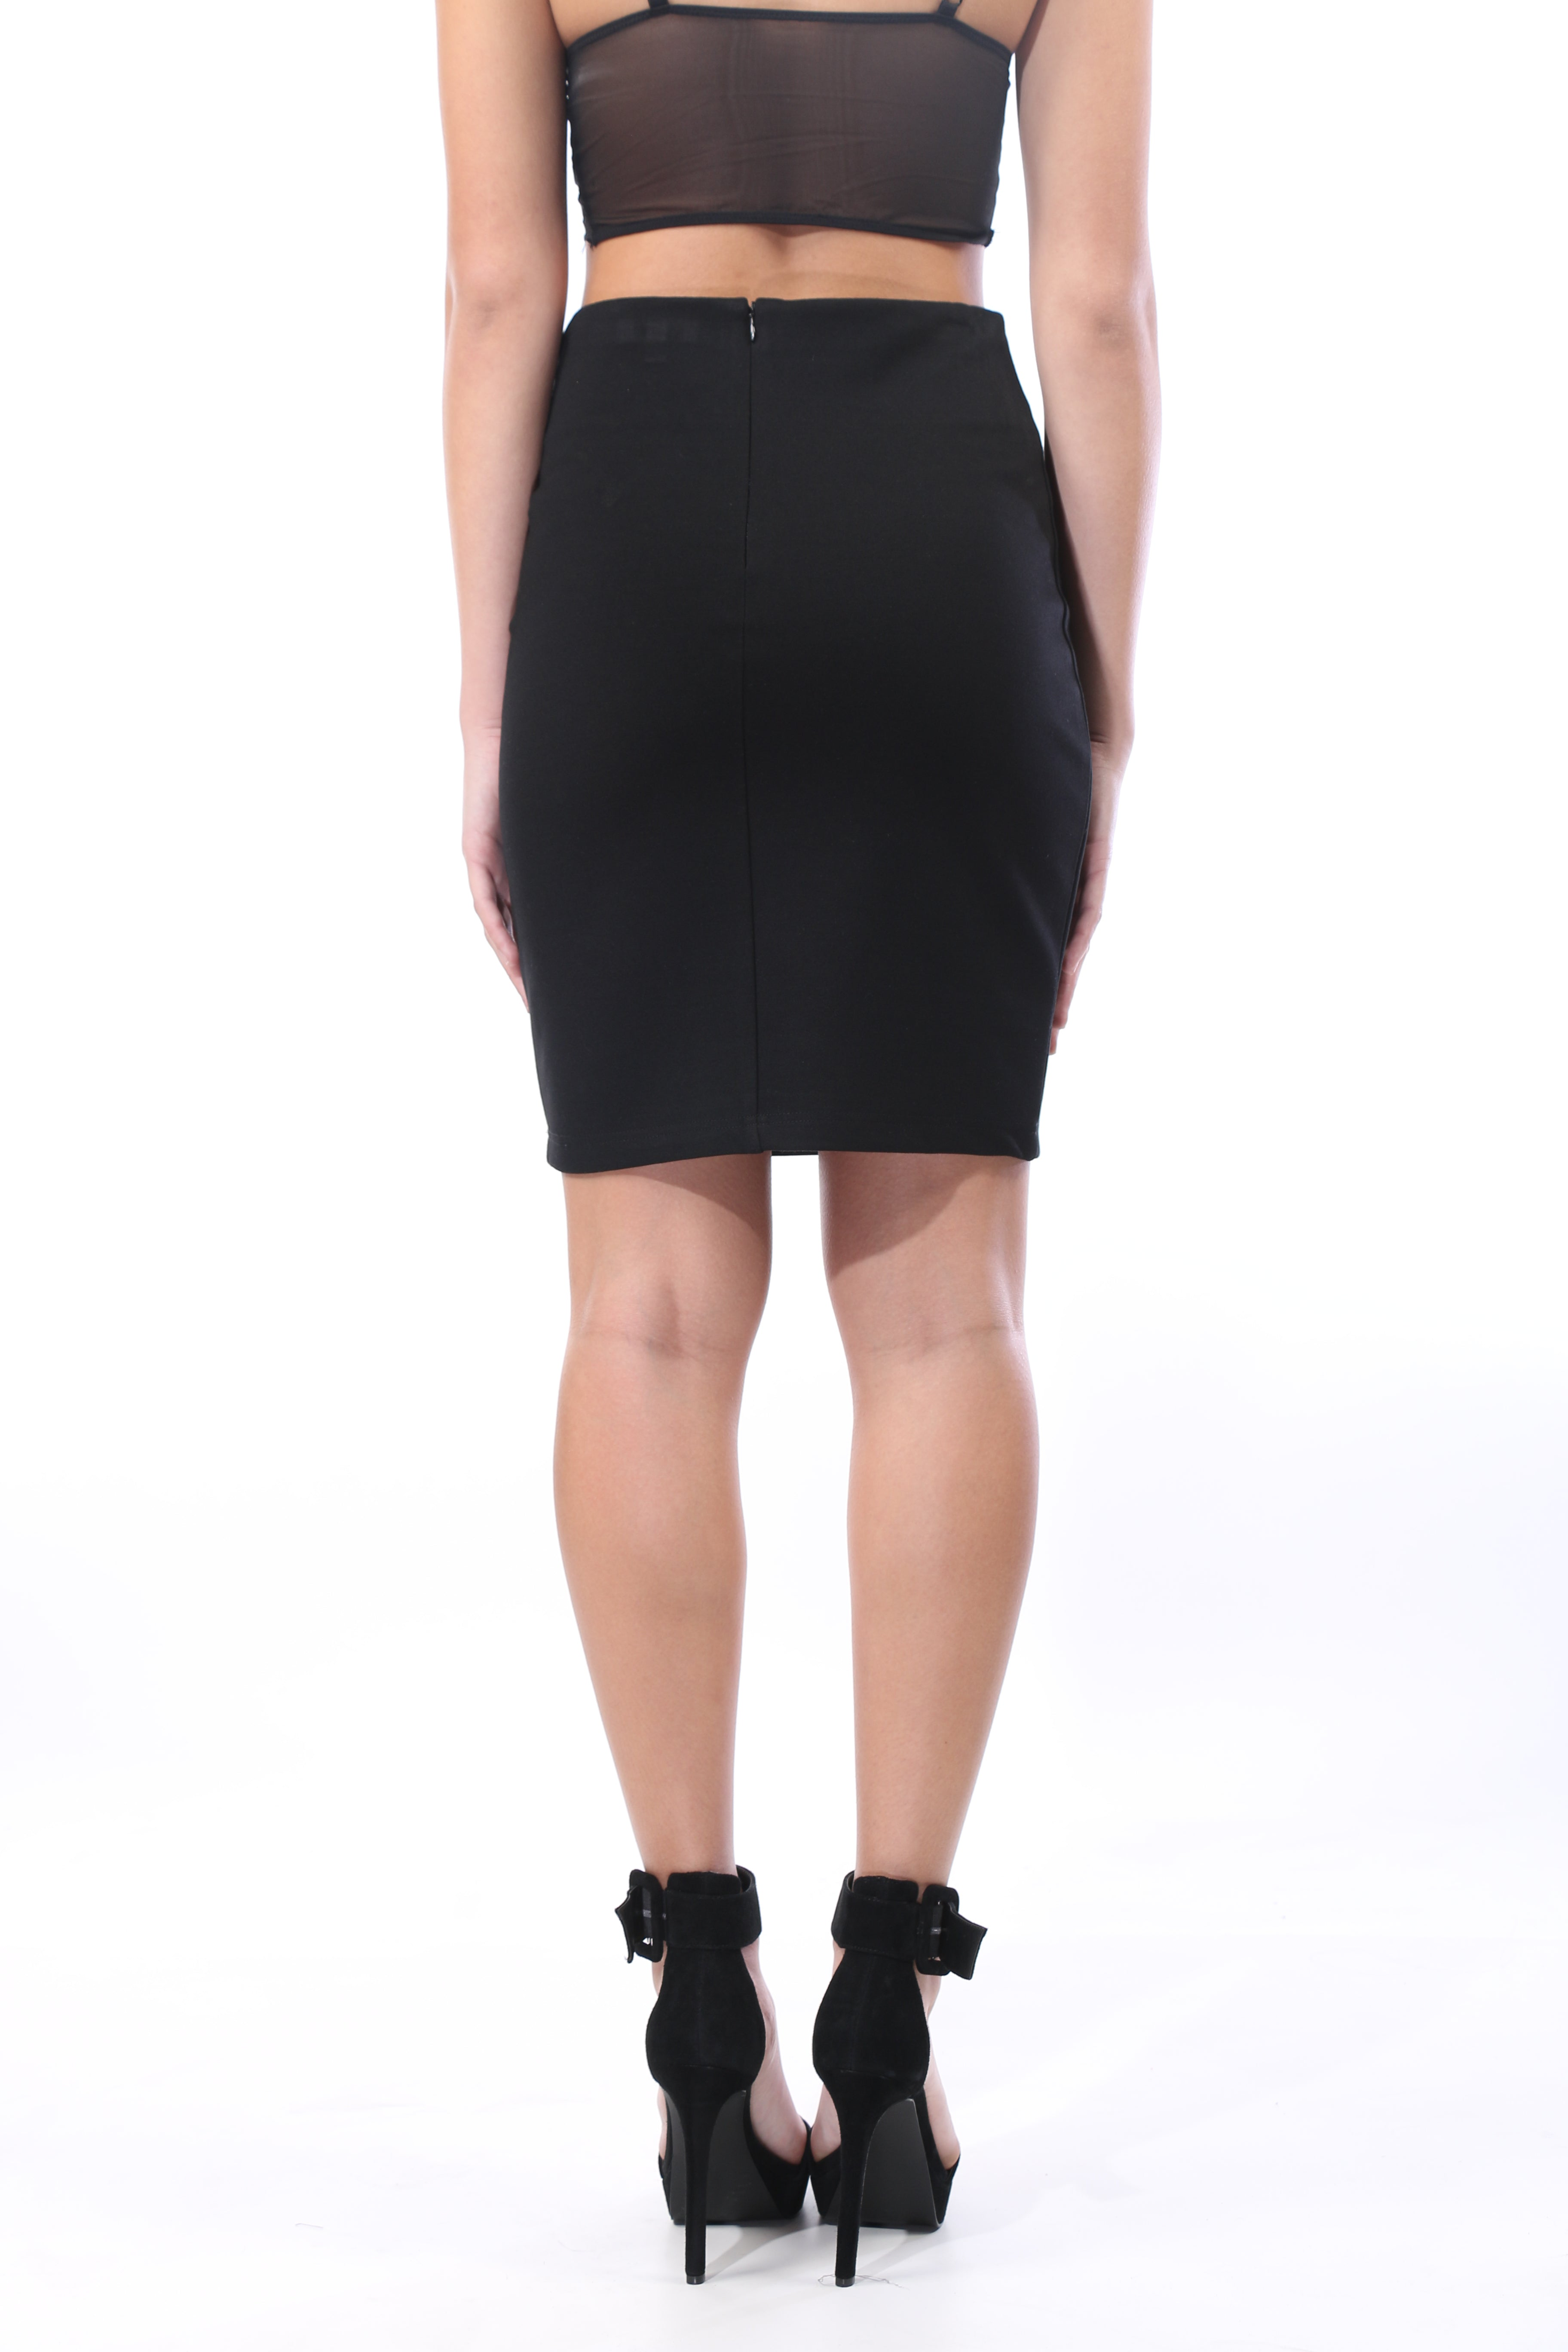 Polly Pencil Mini Skirt - OWLXFISH